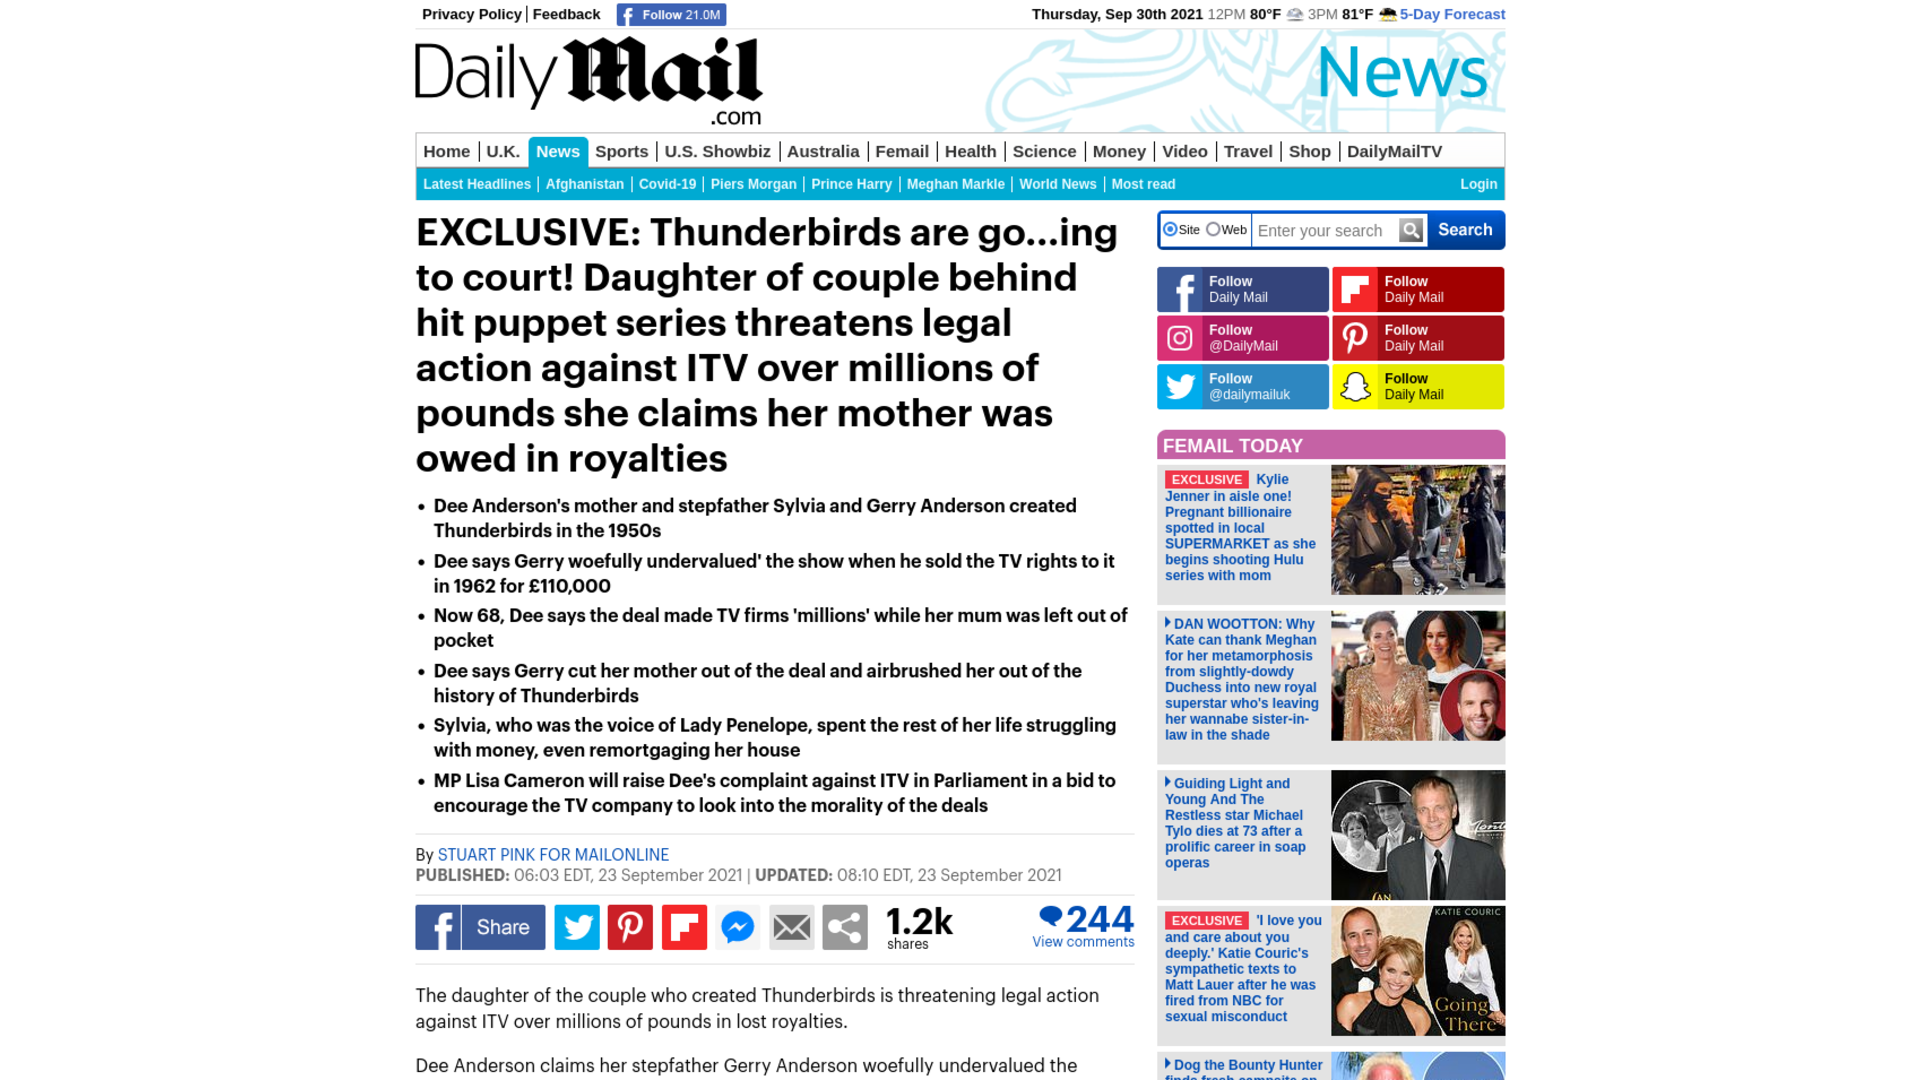 Fairness Rocks News EXCLUSIVE: Thunderbirds are go…ing to court! Daughter of couple behind hit puppet series threatens legal action against ITV over millions of pounds she claims her mother was owed in royalties